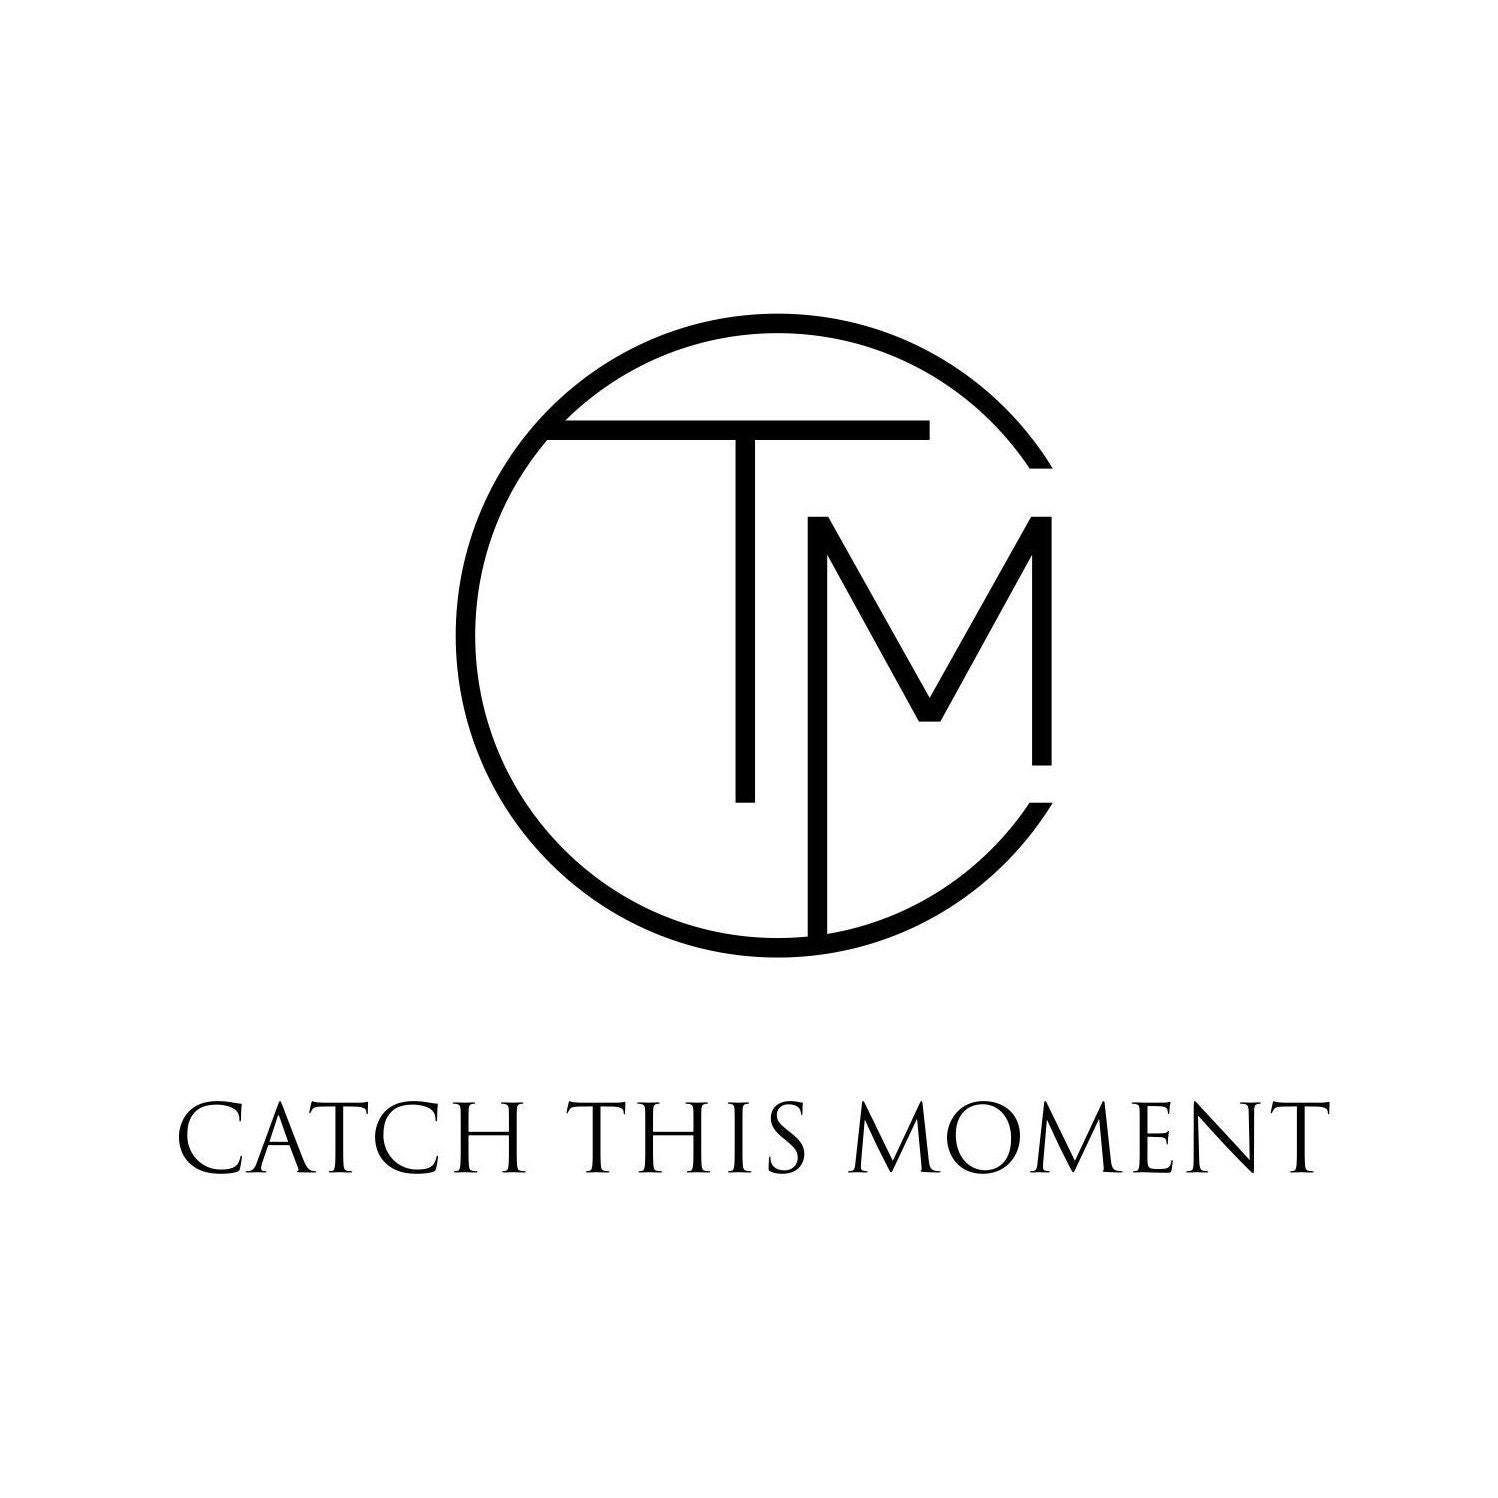 CatchThisMoment